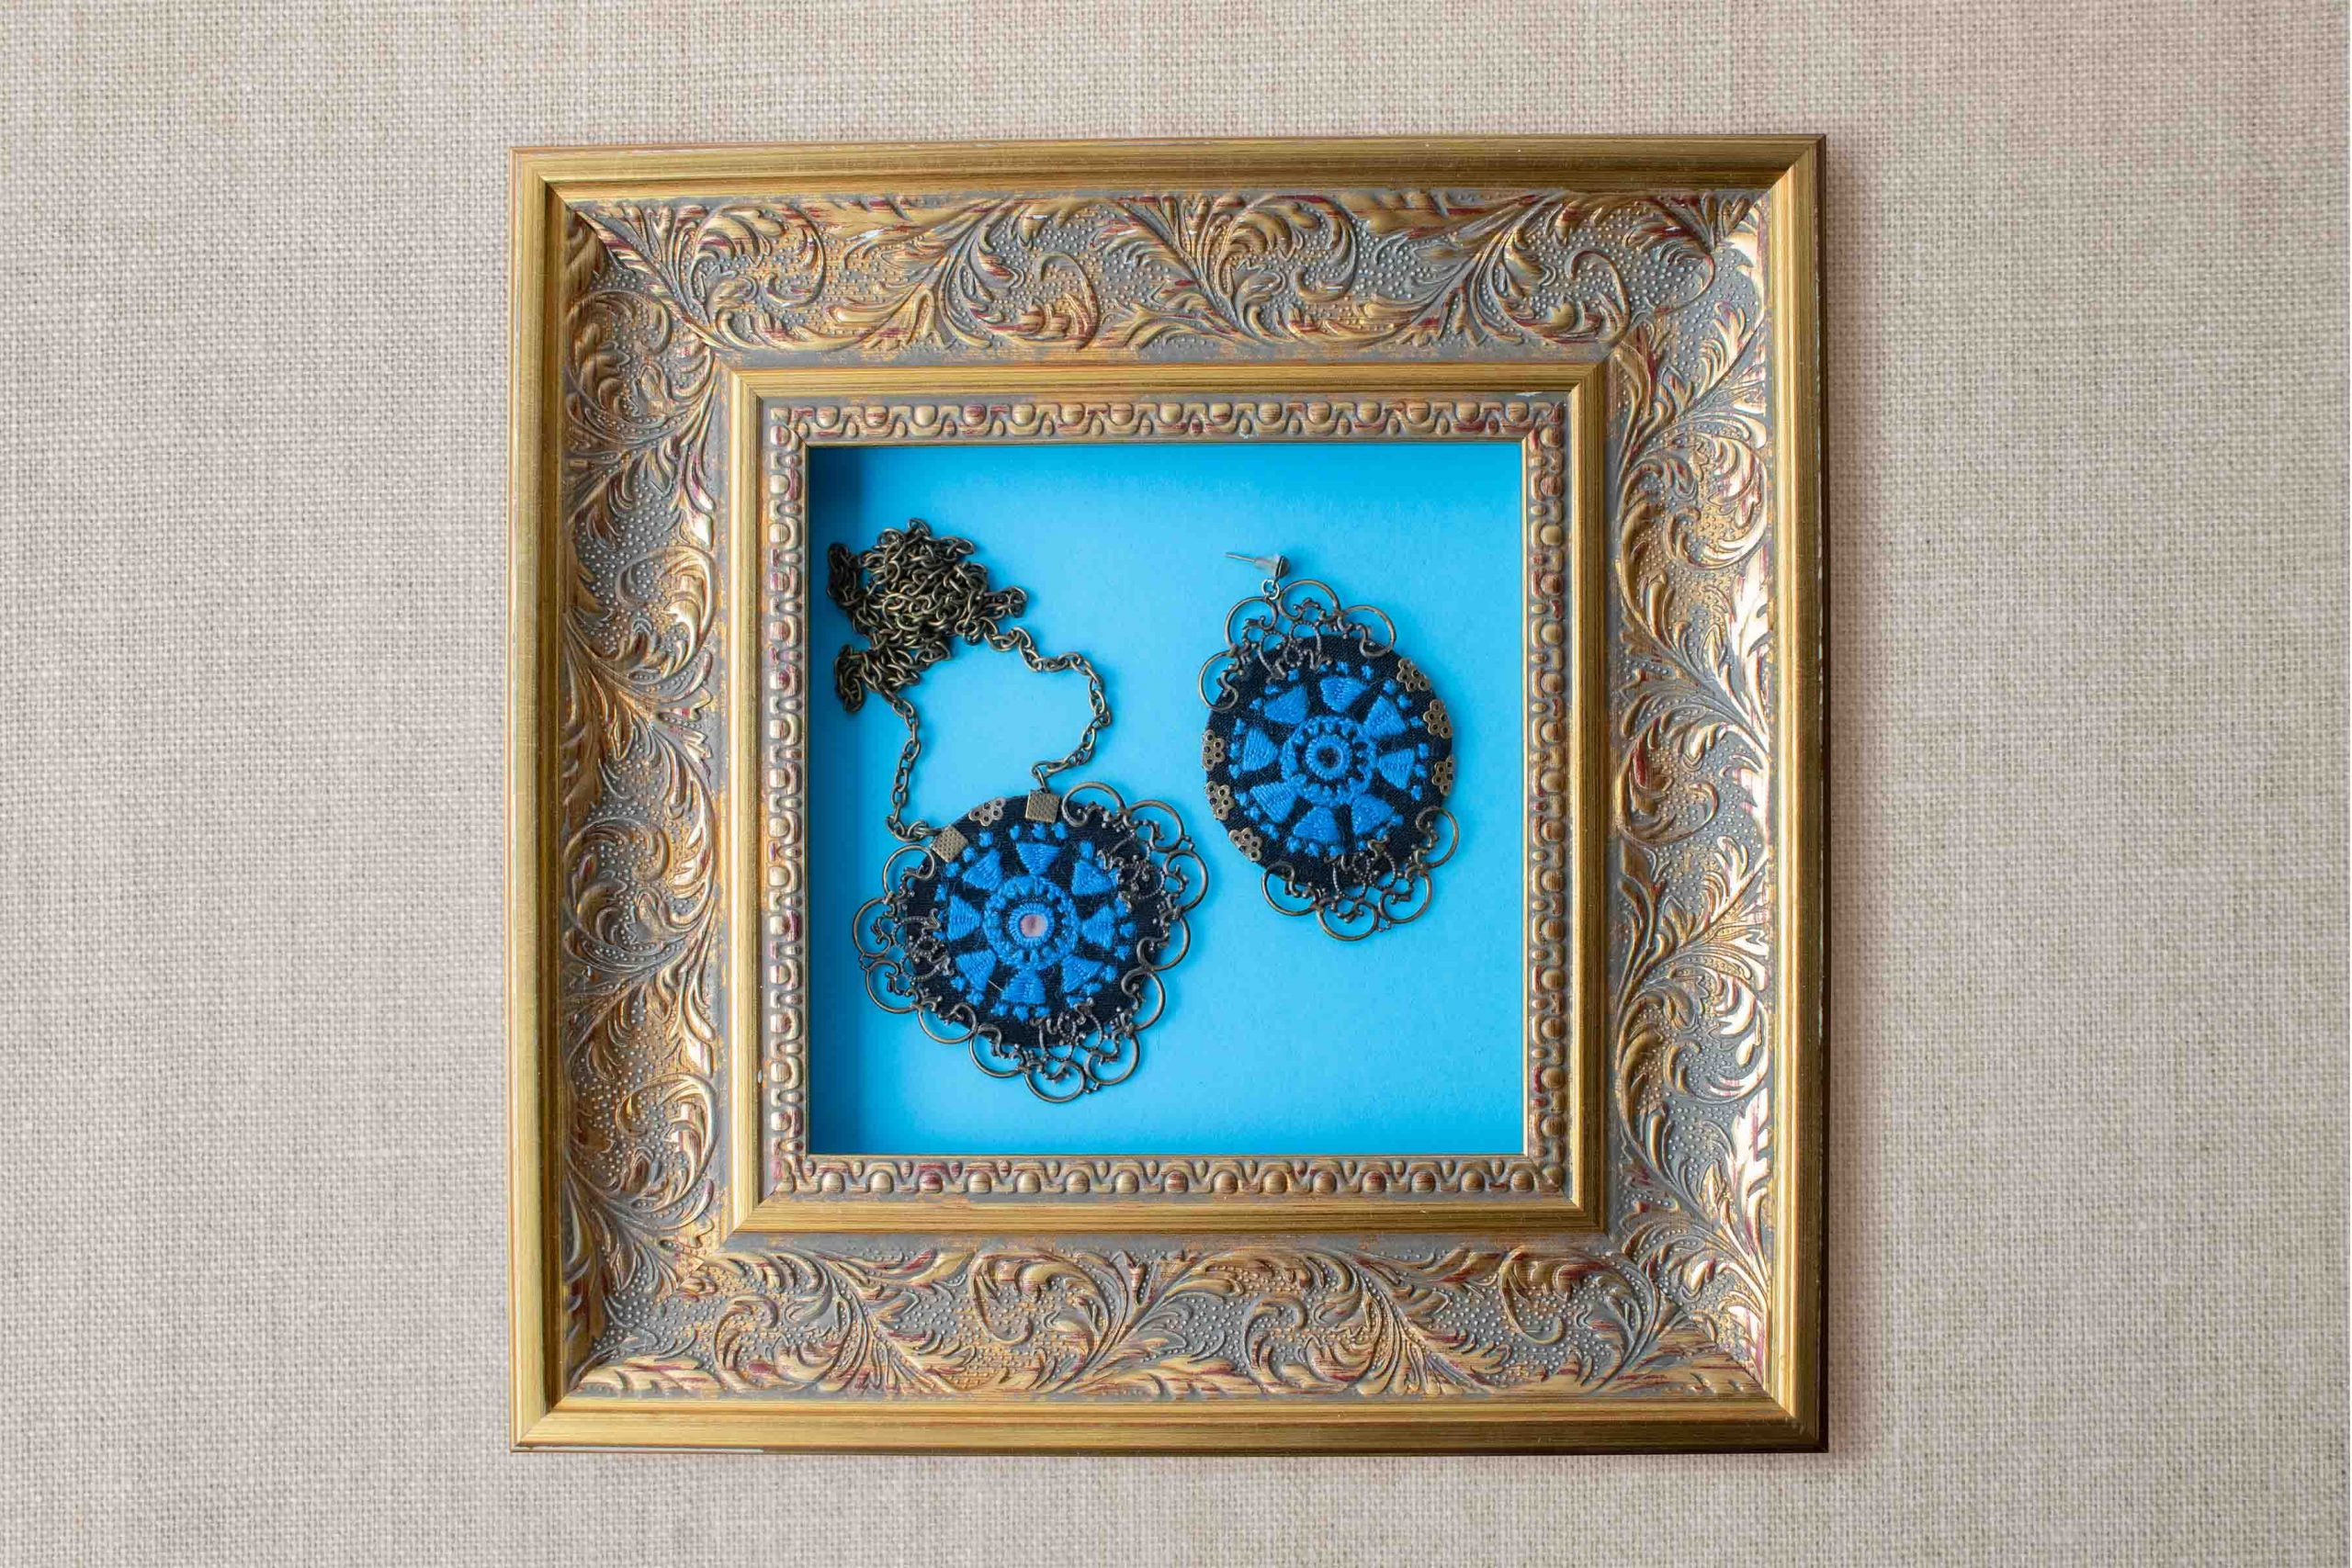 Persian Balochi Embroidery Set, Includes A Necklace And A Pair Of Earring, Floral Blue Pattern With Circular Shape Is Decorated With Tiny Mirror In The Centre